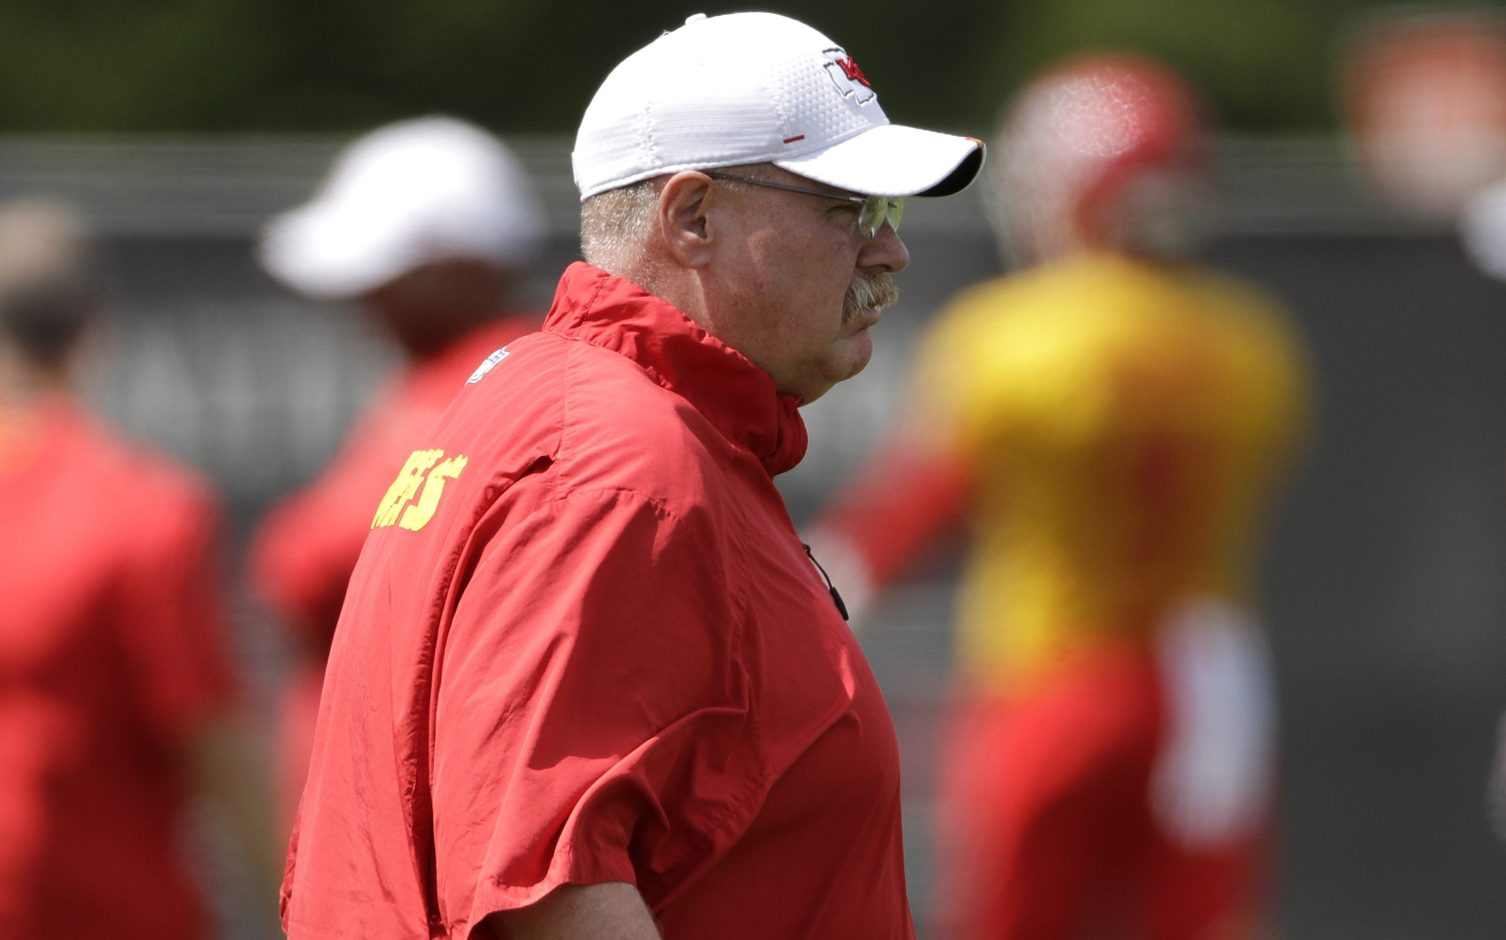 Kansas City radio host taken off air for comments about Andy Reid's son